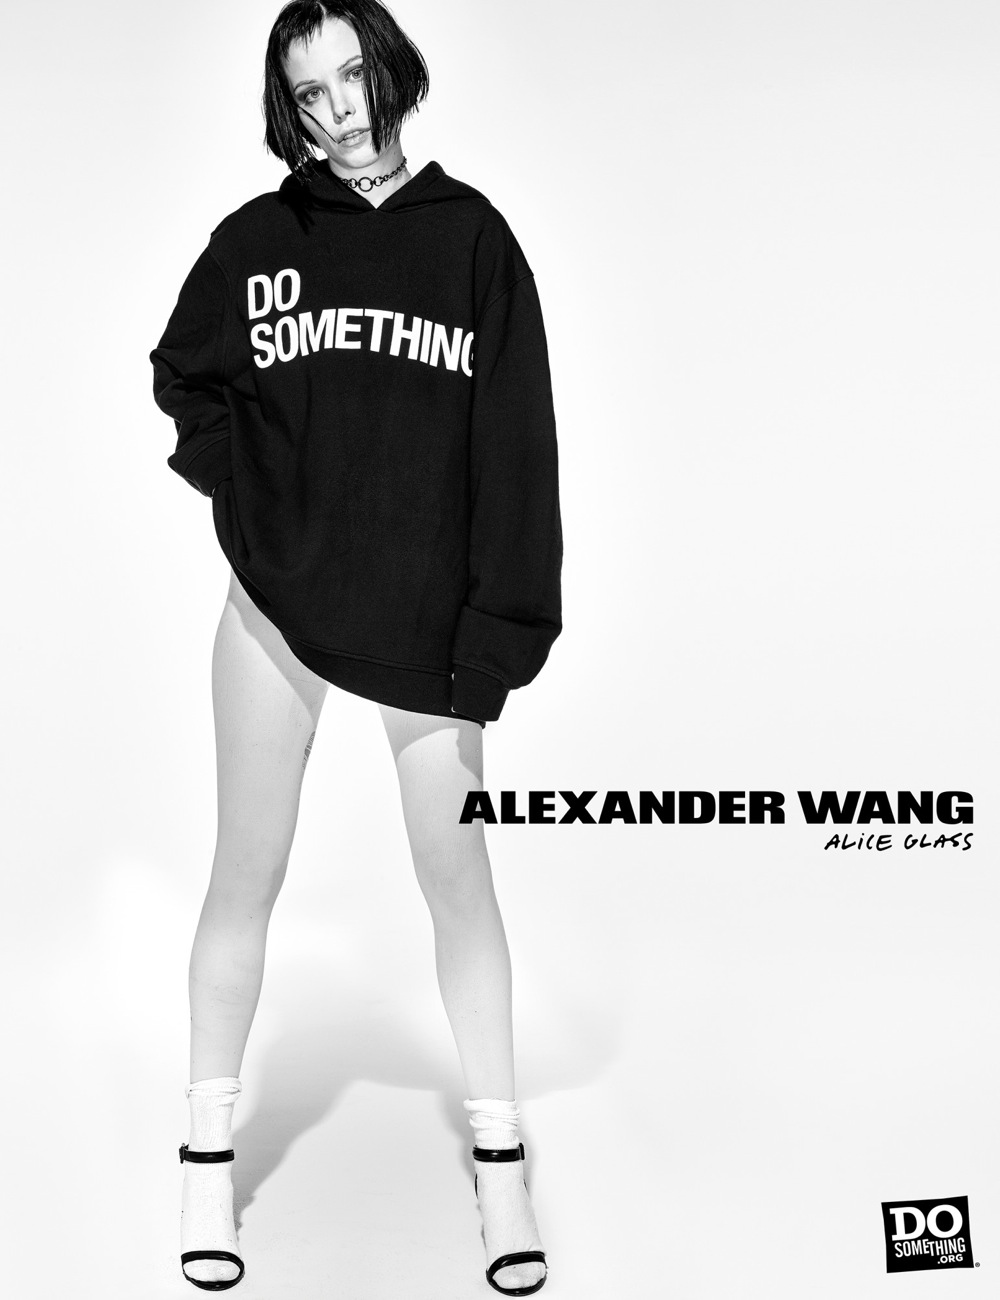 Alice Glass wears Alexander Wang x DoSomething